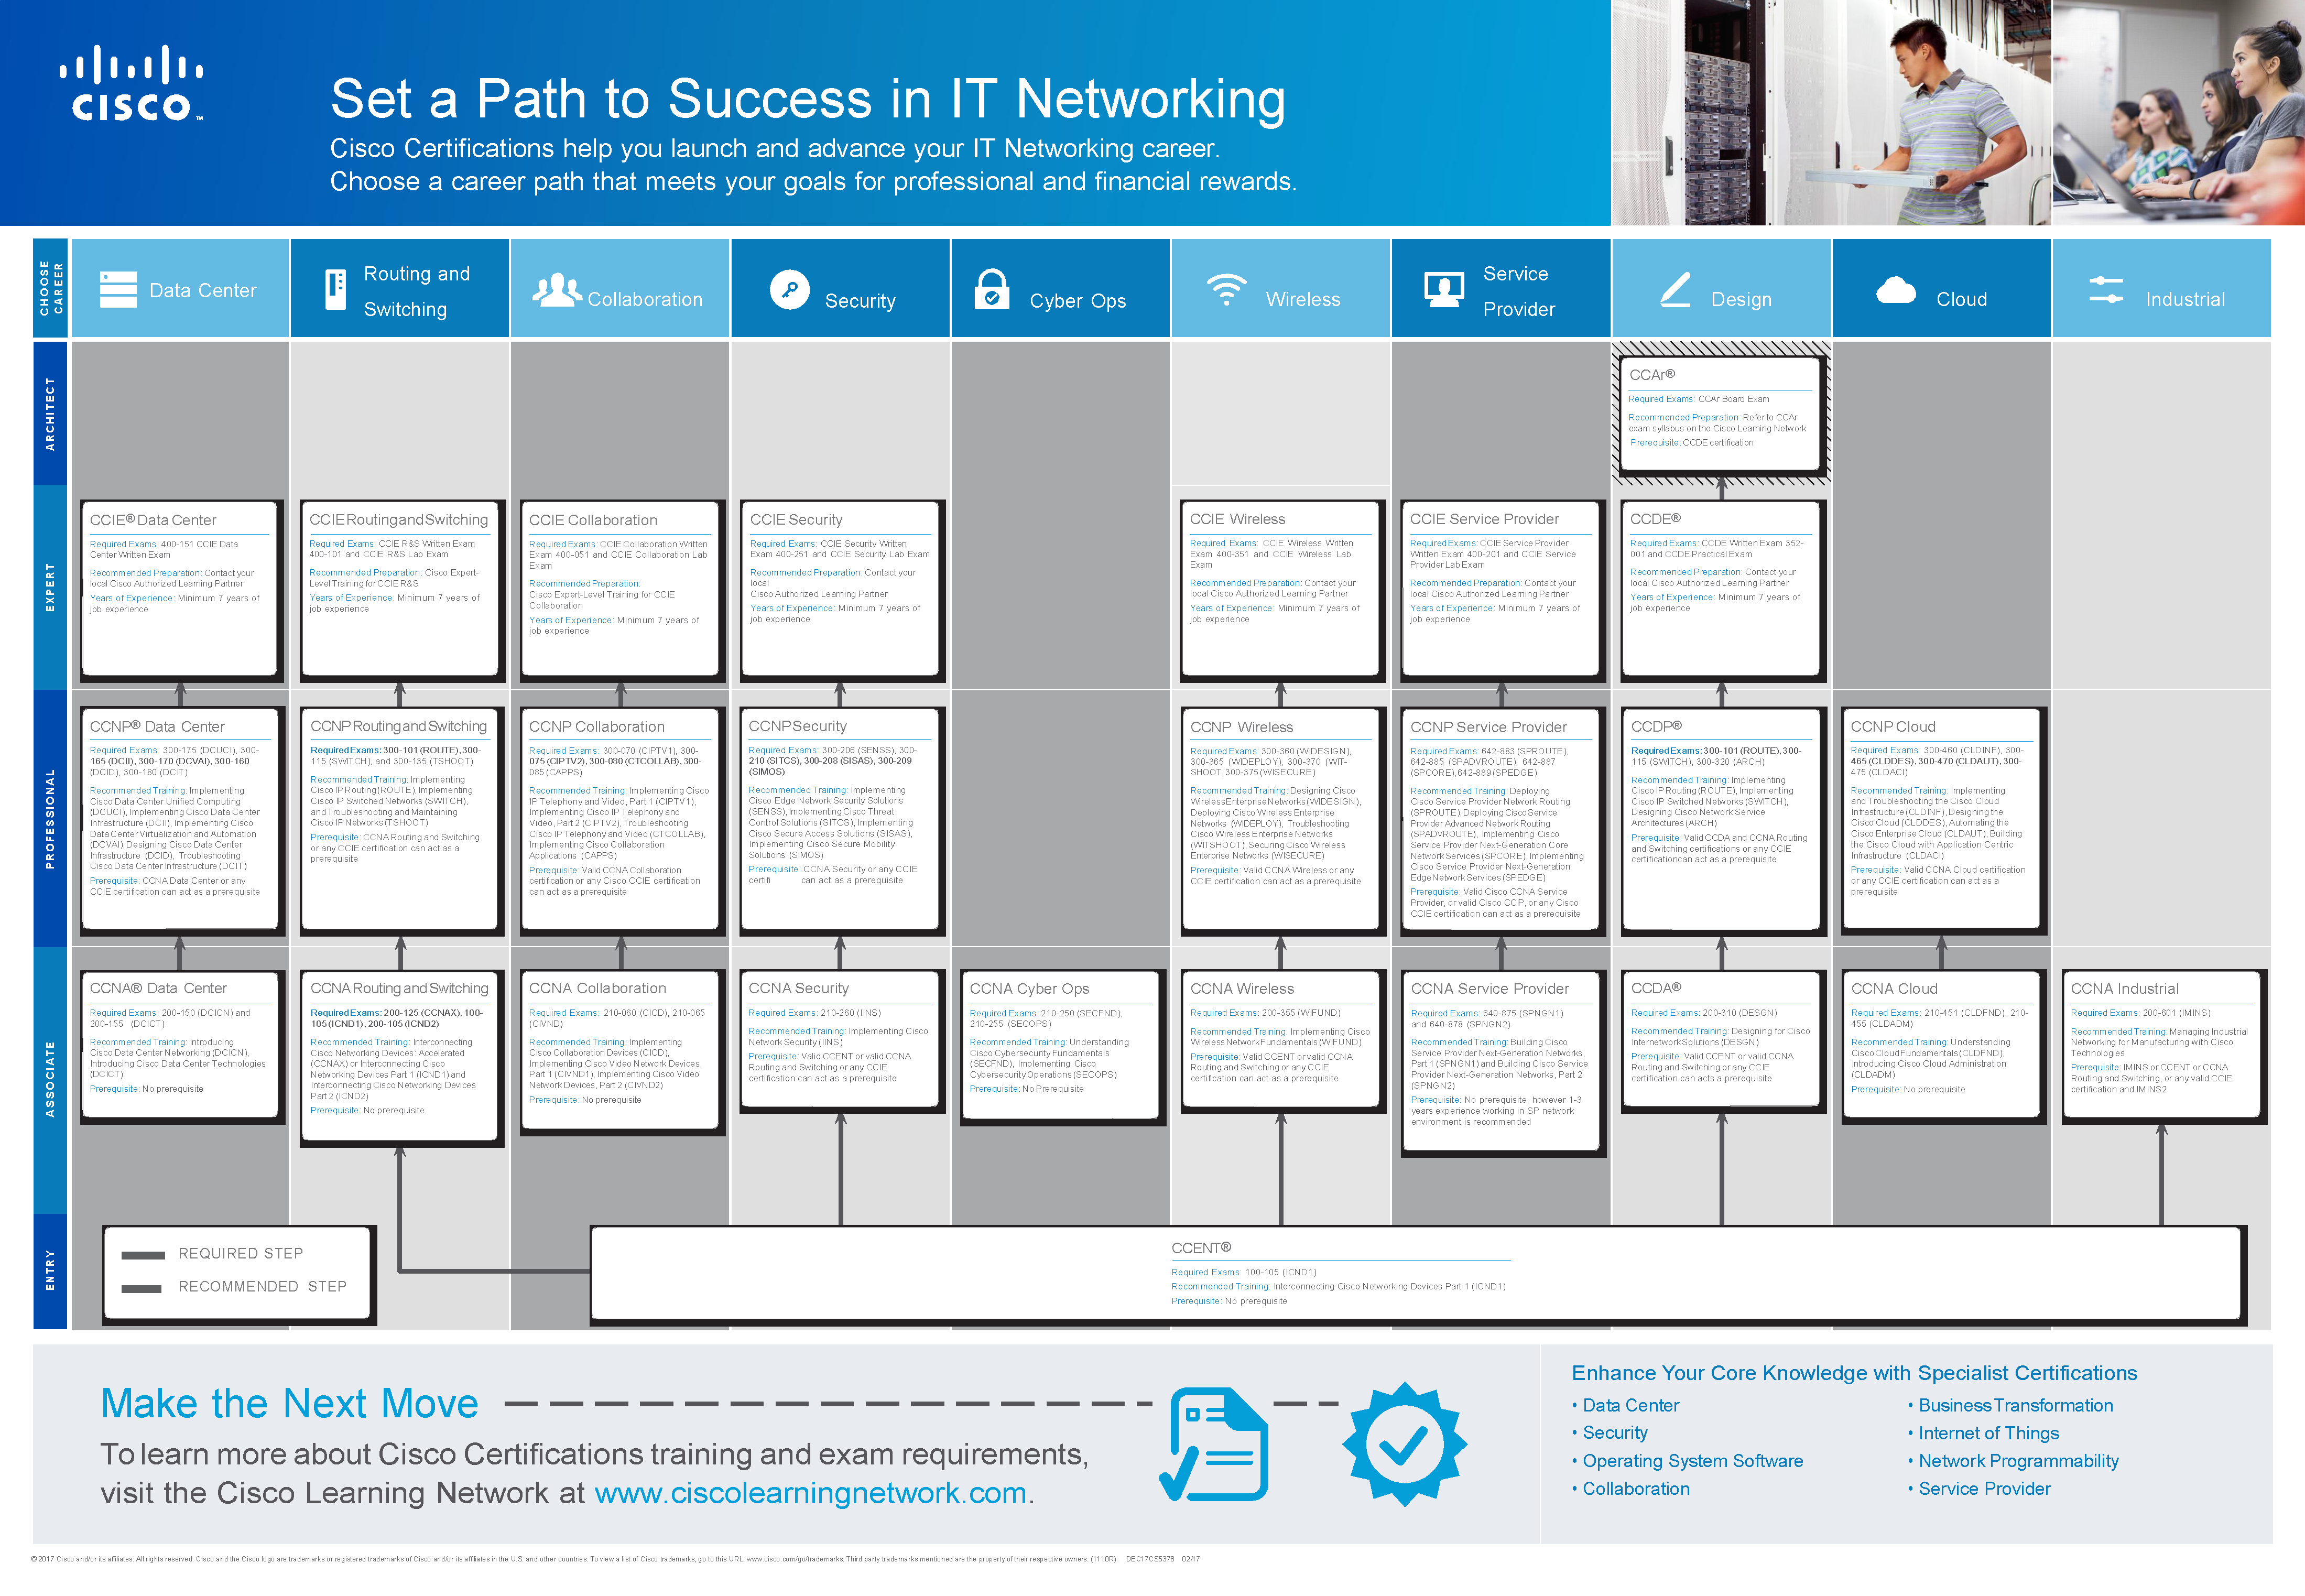 Finding The Right Cisco Path